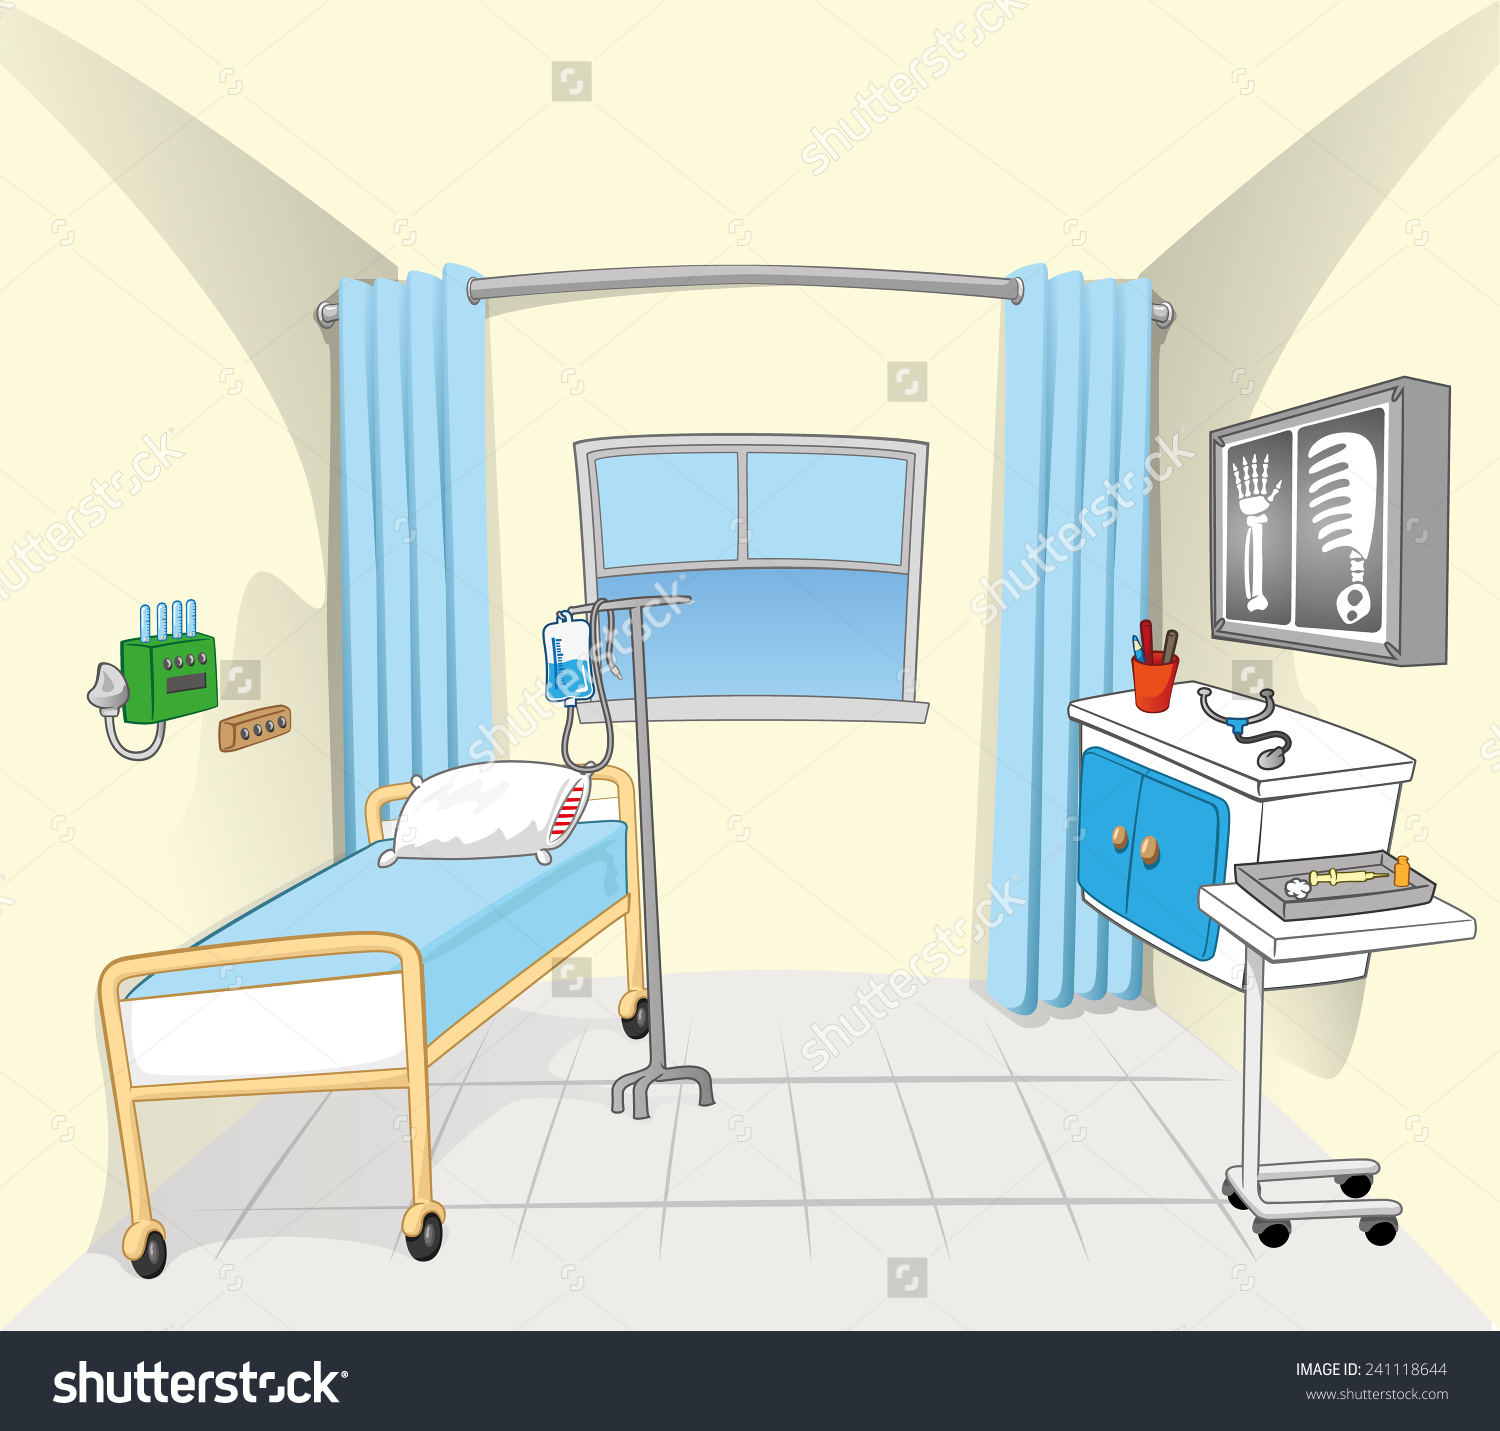 This Illustration Background Setting Hospital Room Stock Vector.